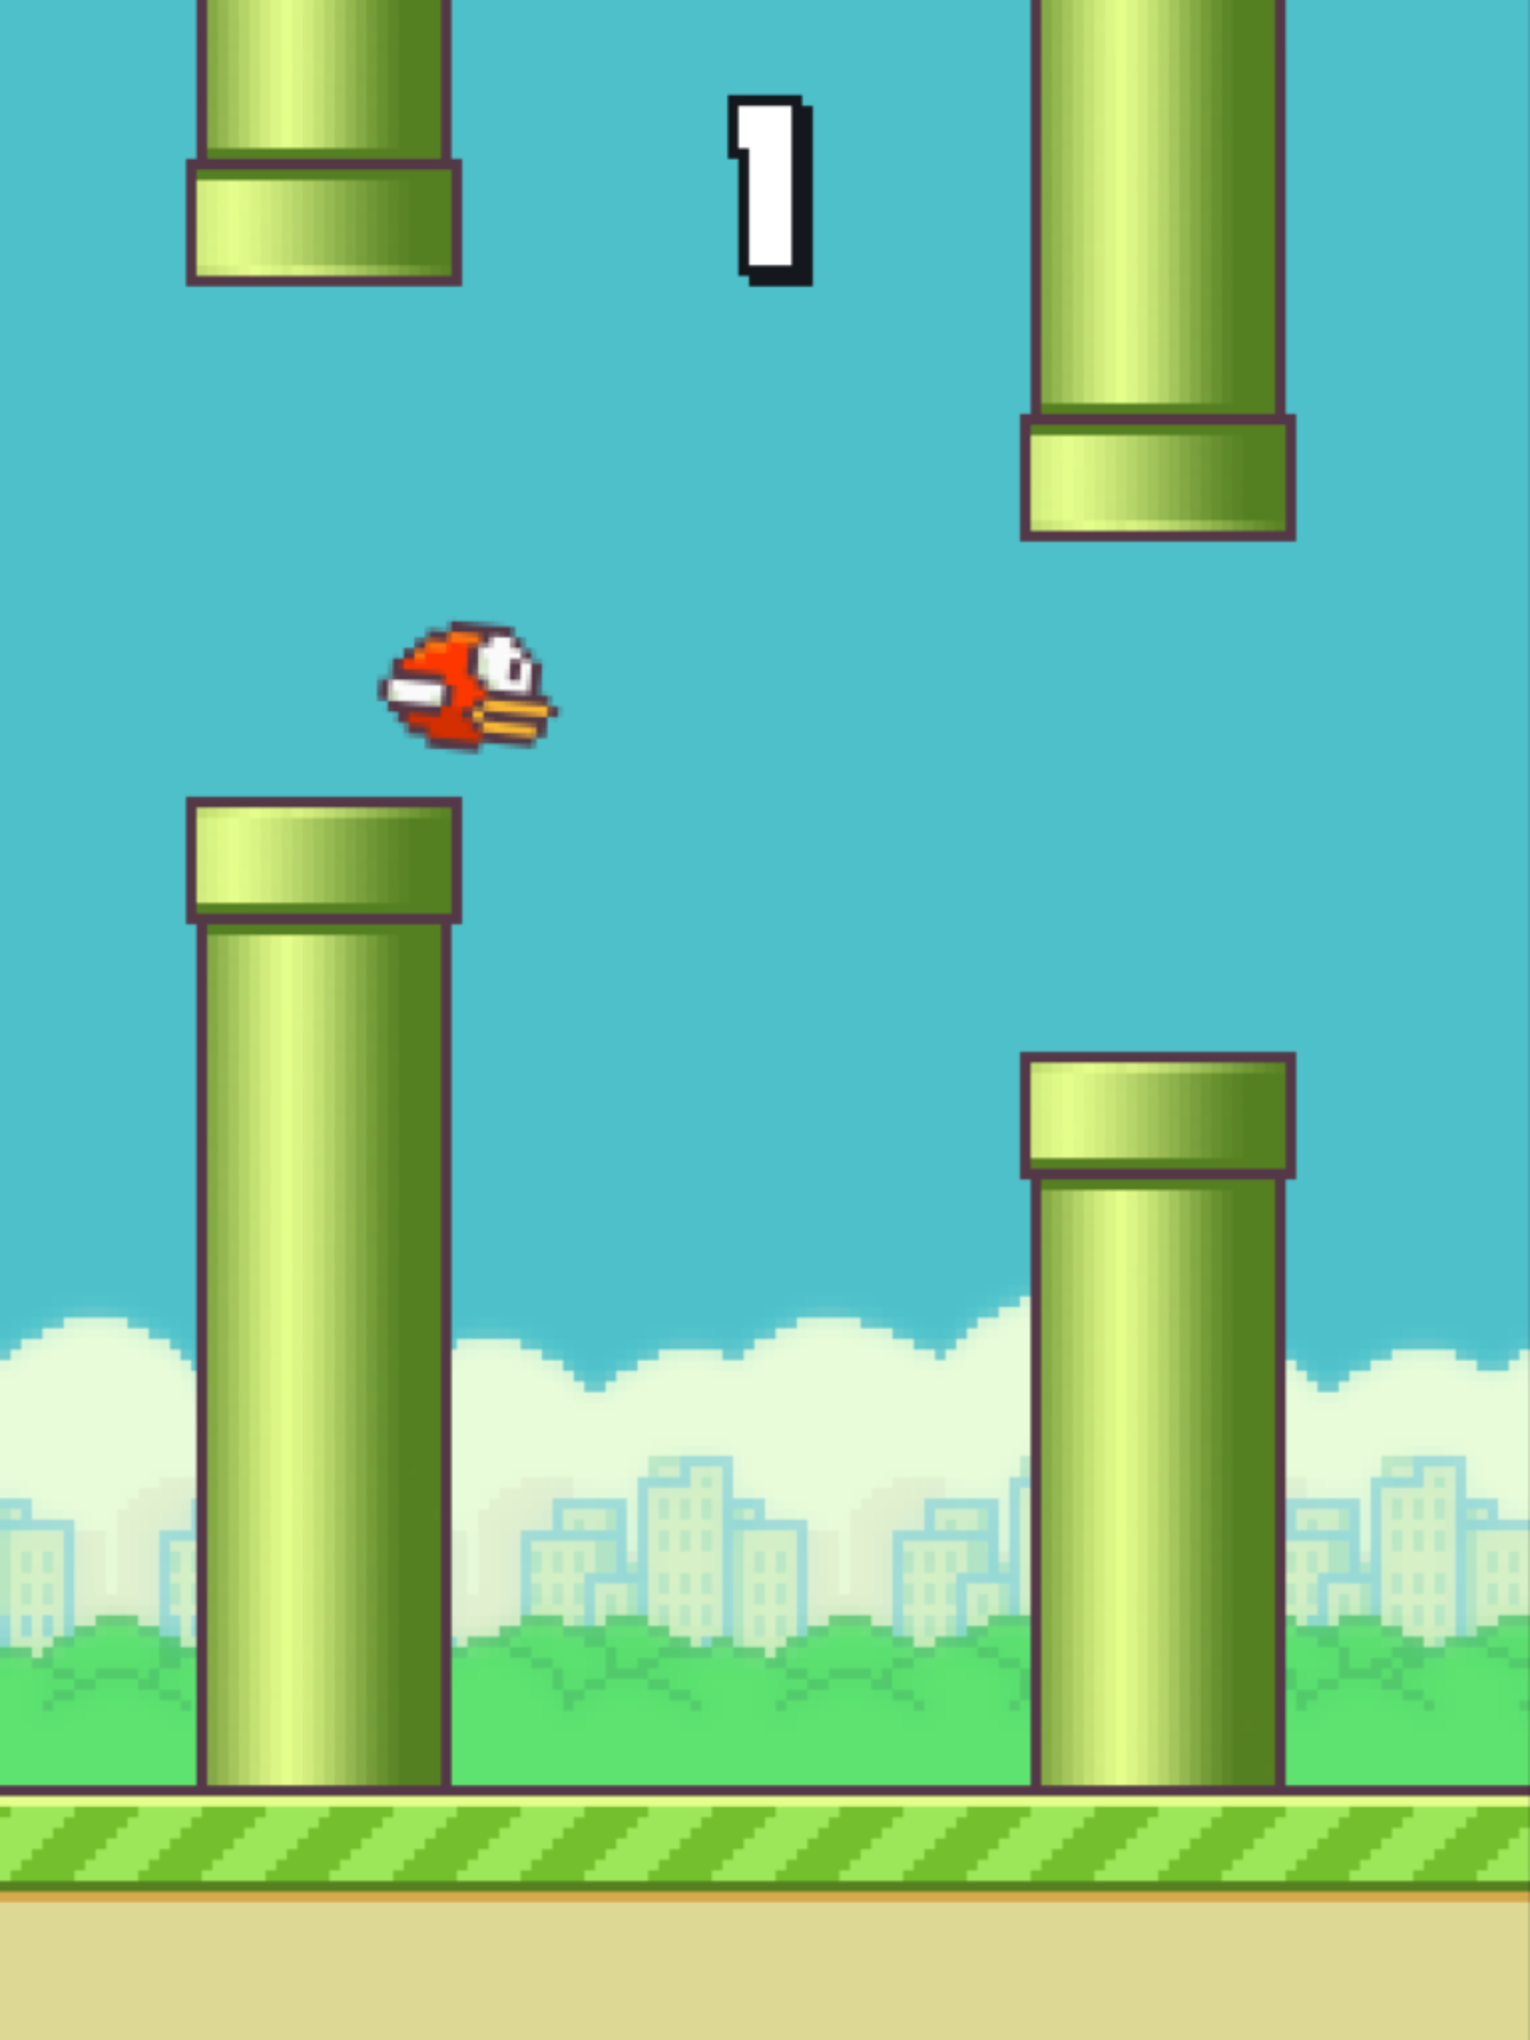 Flappy Bird could return, creator says